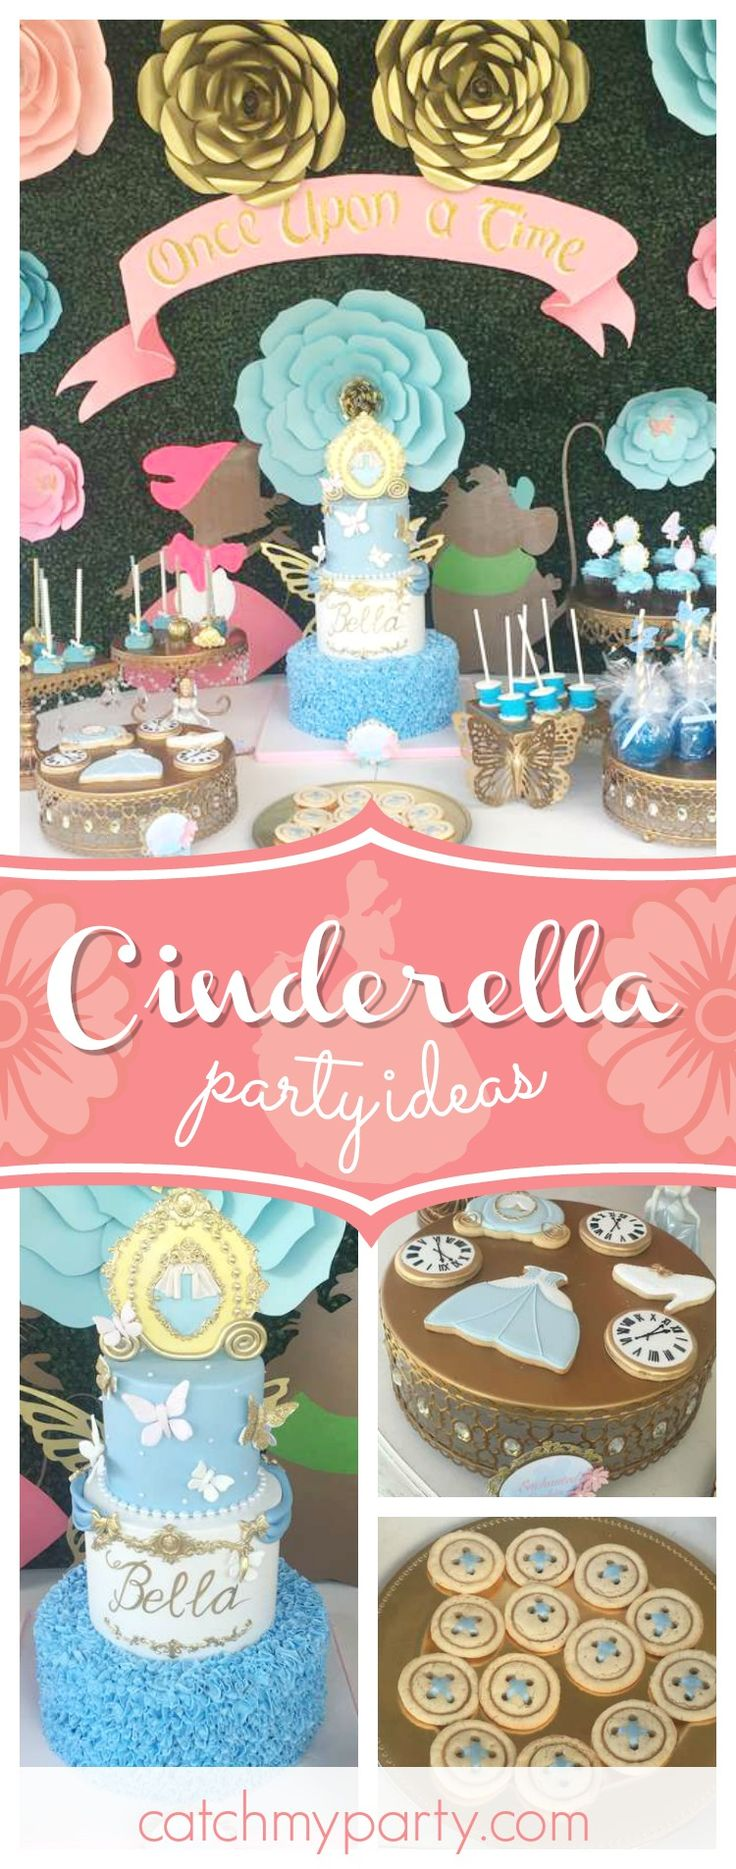 Feel like the belle of the ball with this incredible Cinderella birthday party! The birthday cake is amazing!!  See more party ideas and share yours at CatchMyParty.com #cinderella #princess #girlbirthday